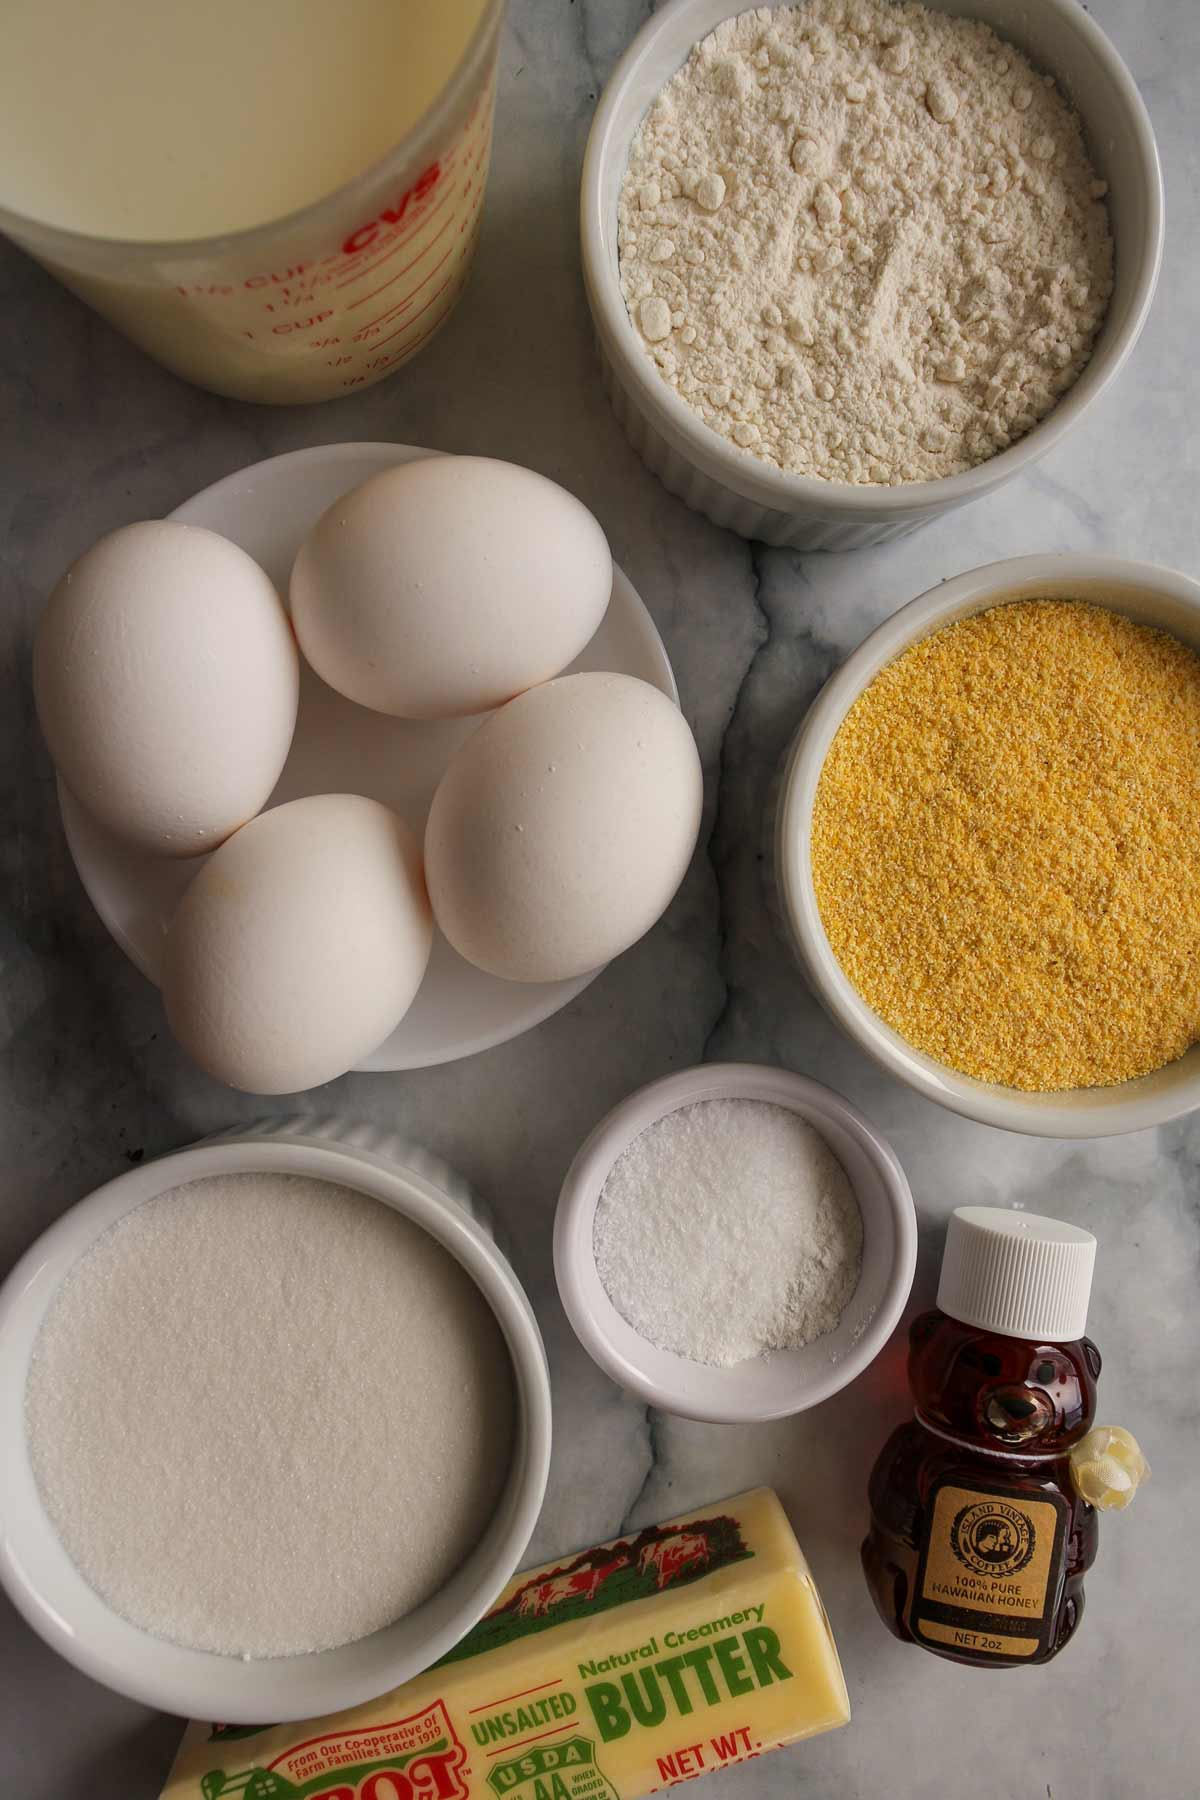 Milk, flour, eggs, cornmeal, sugar, salt, baking powder, honey, and butter.